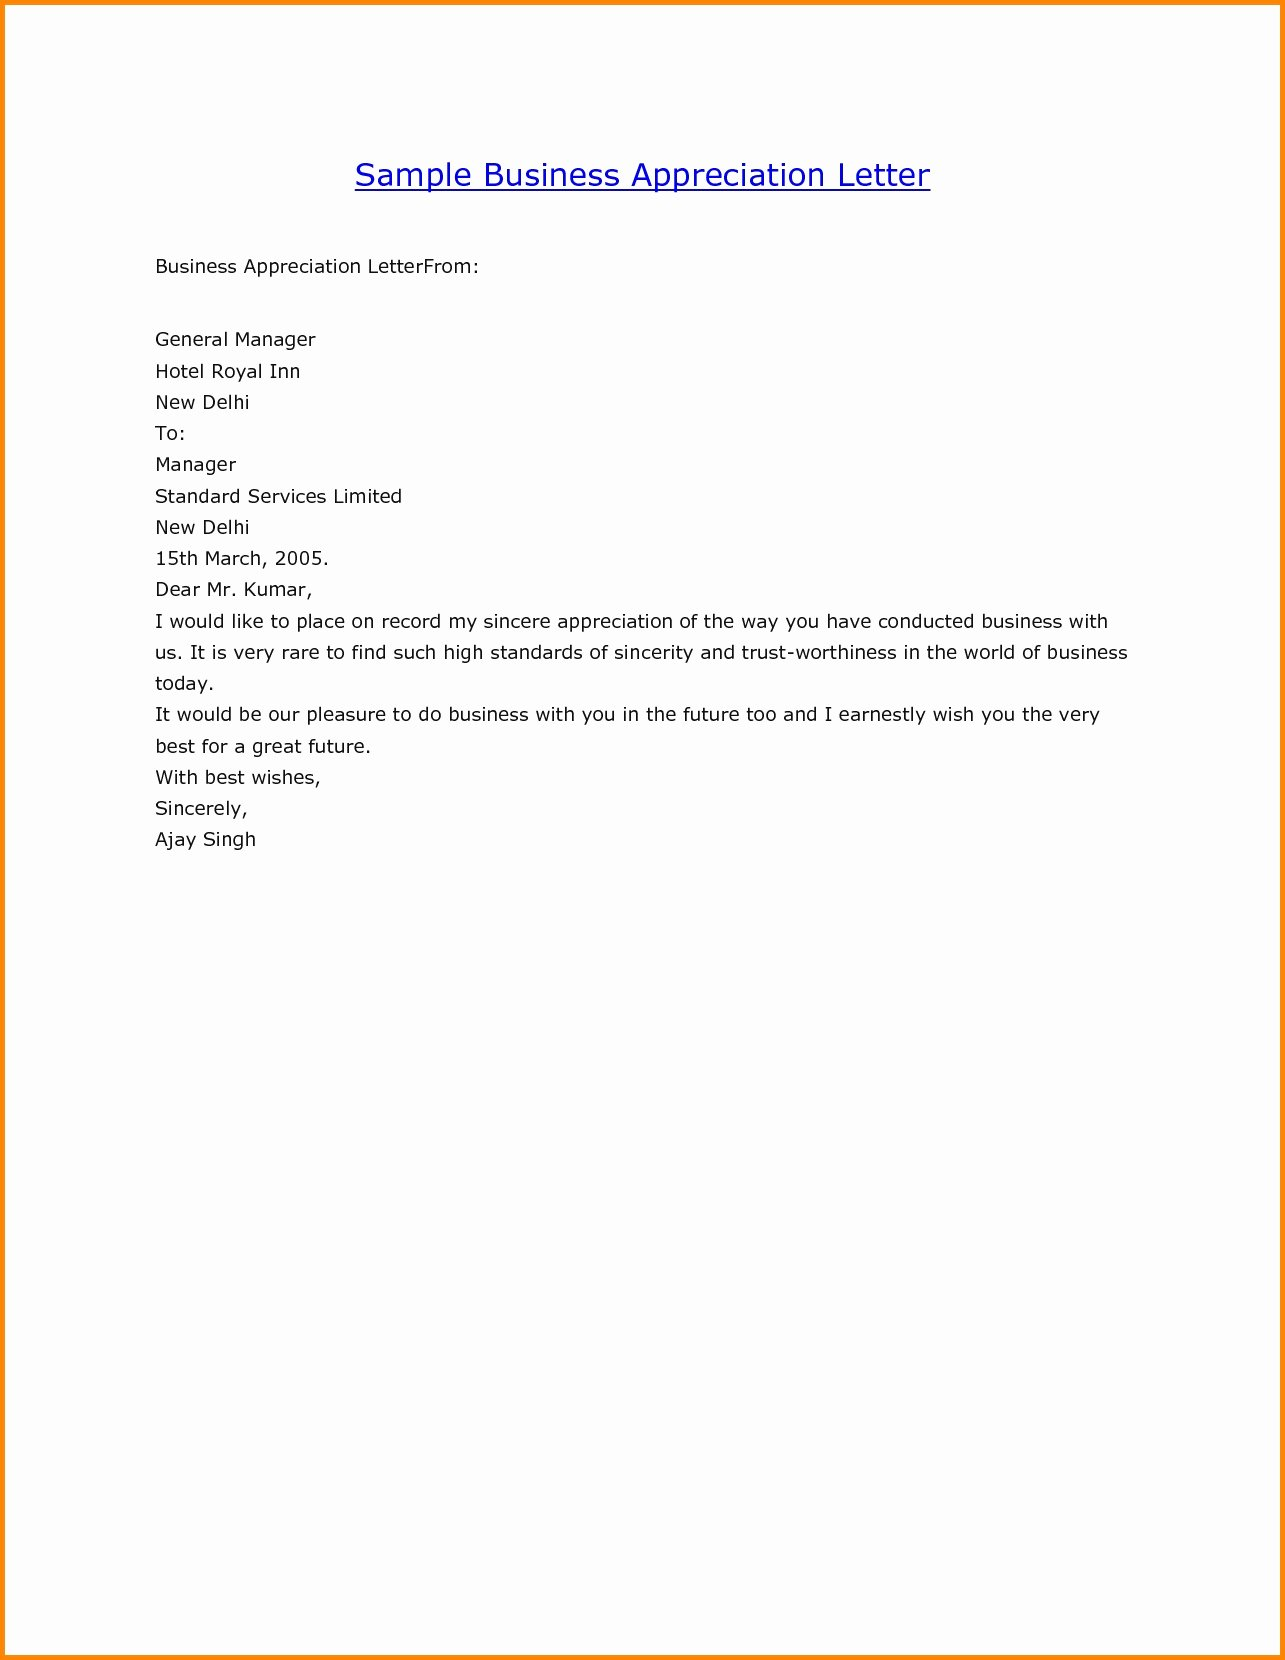 Letters Of Appreciation Template New Business Appreciation Letter